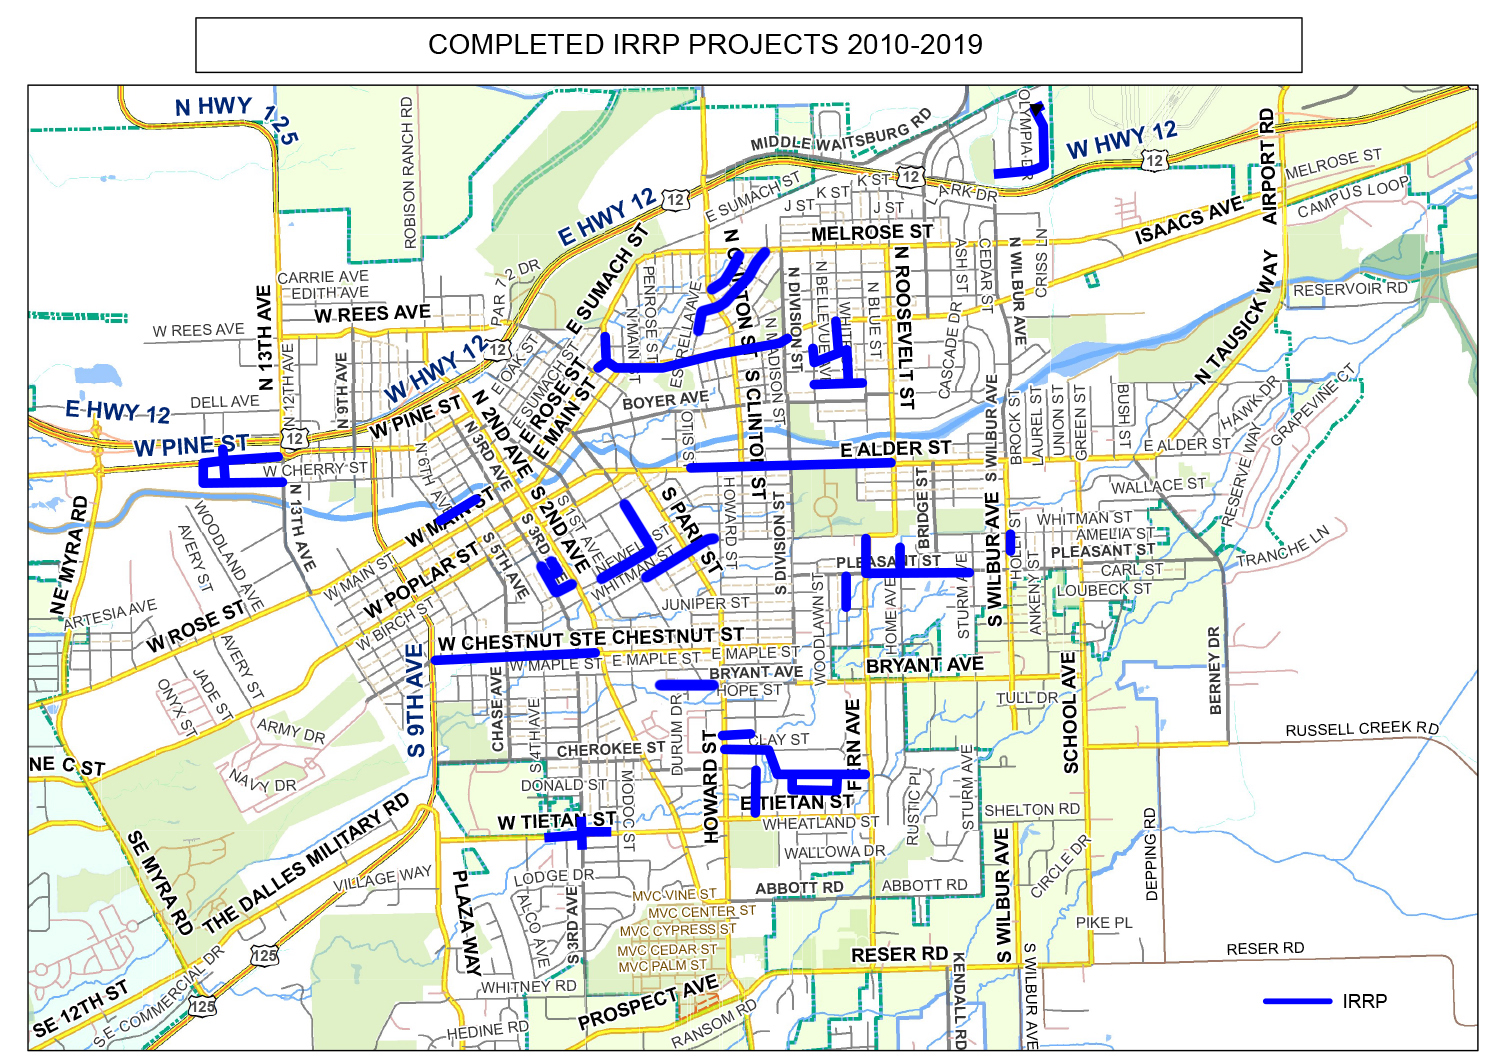 City of Walla Walla IRRP projects from 2010-19